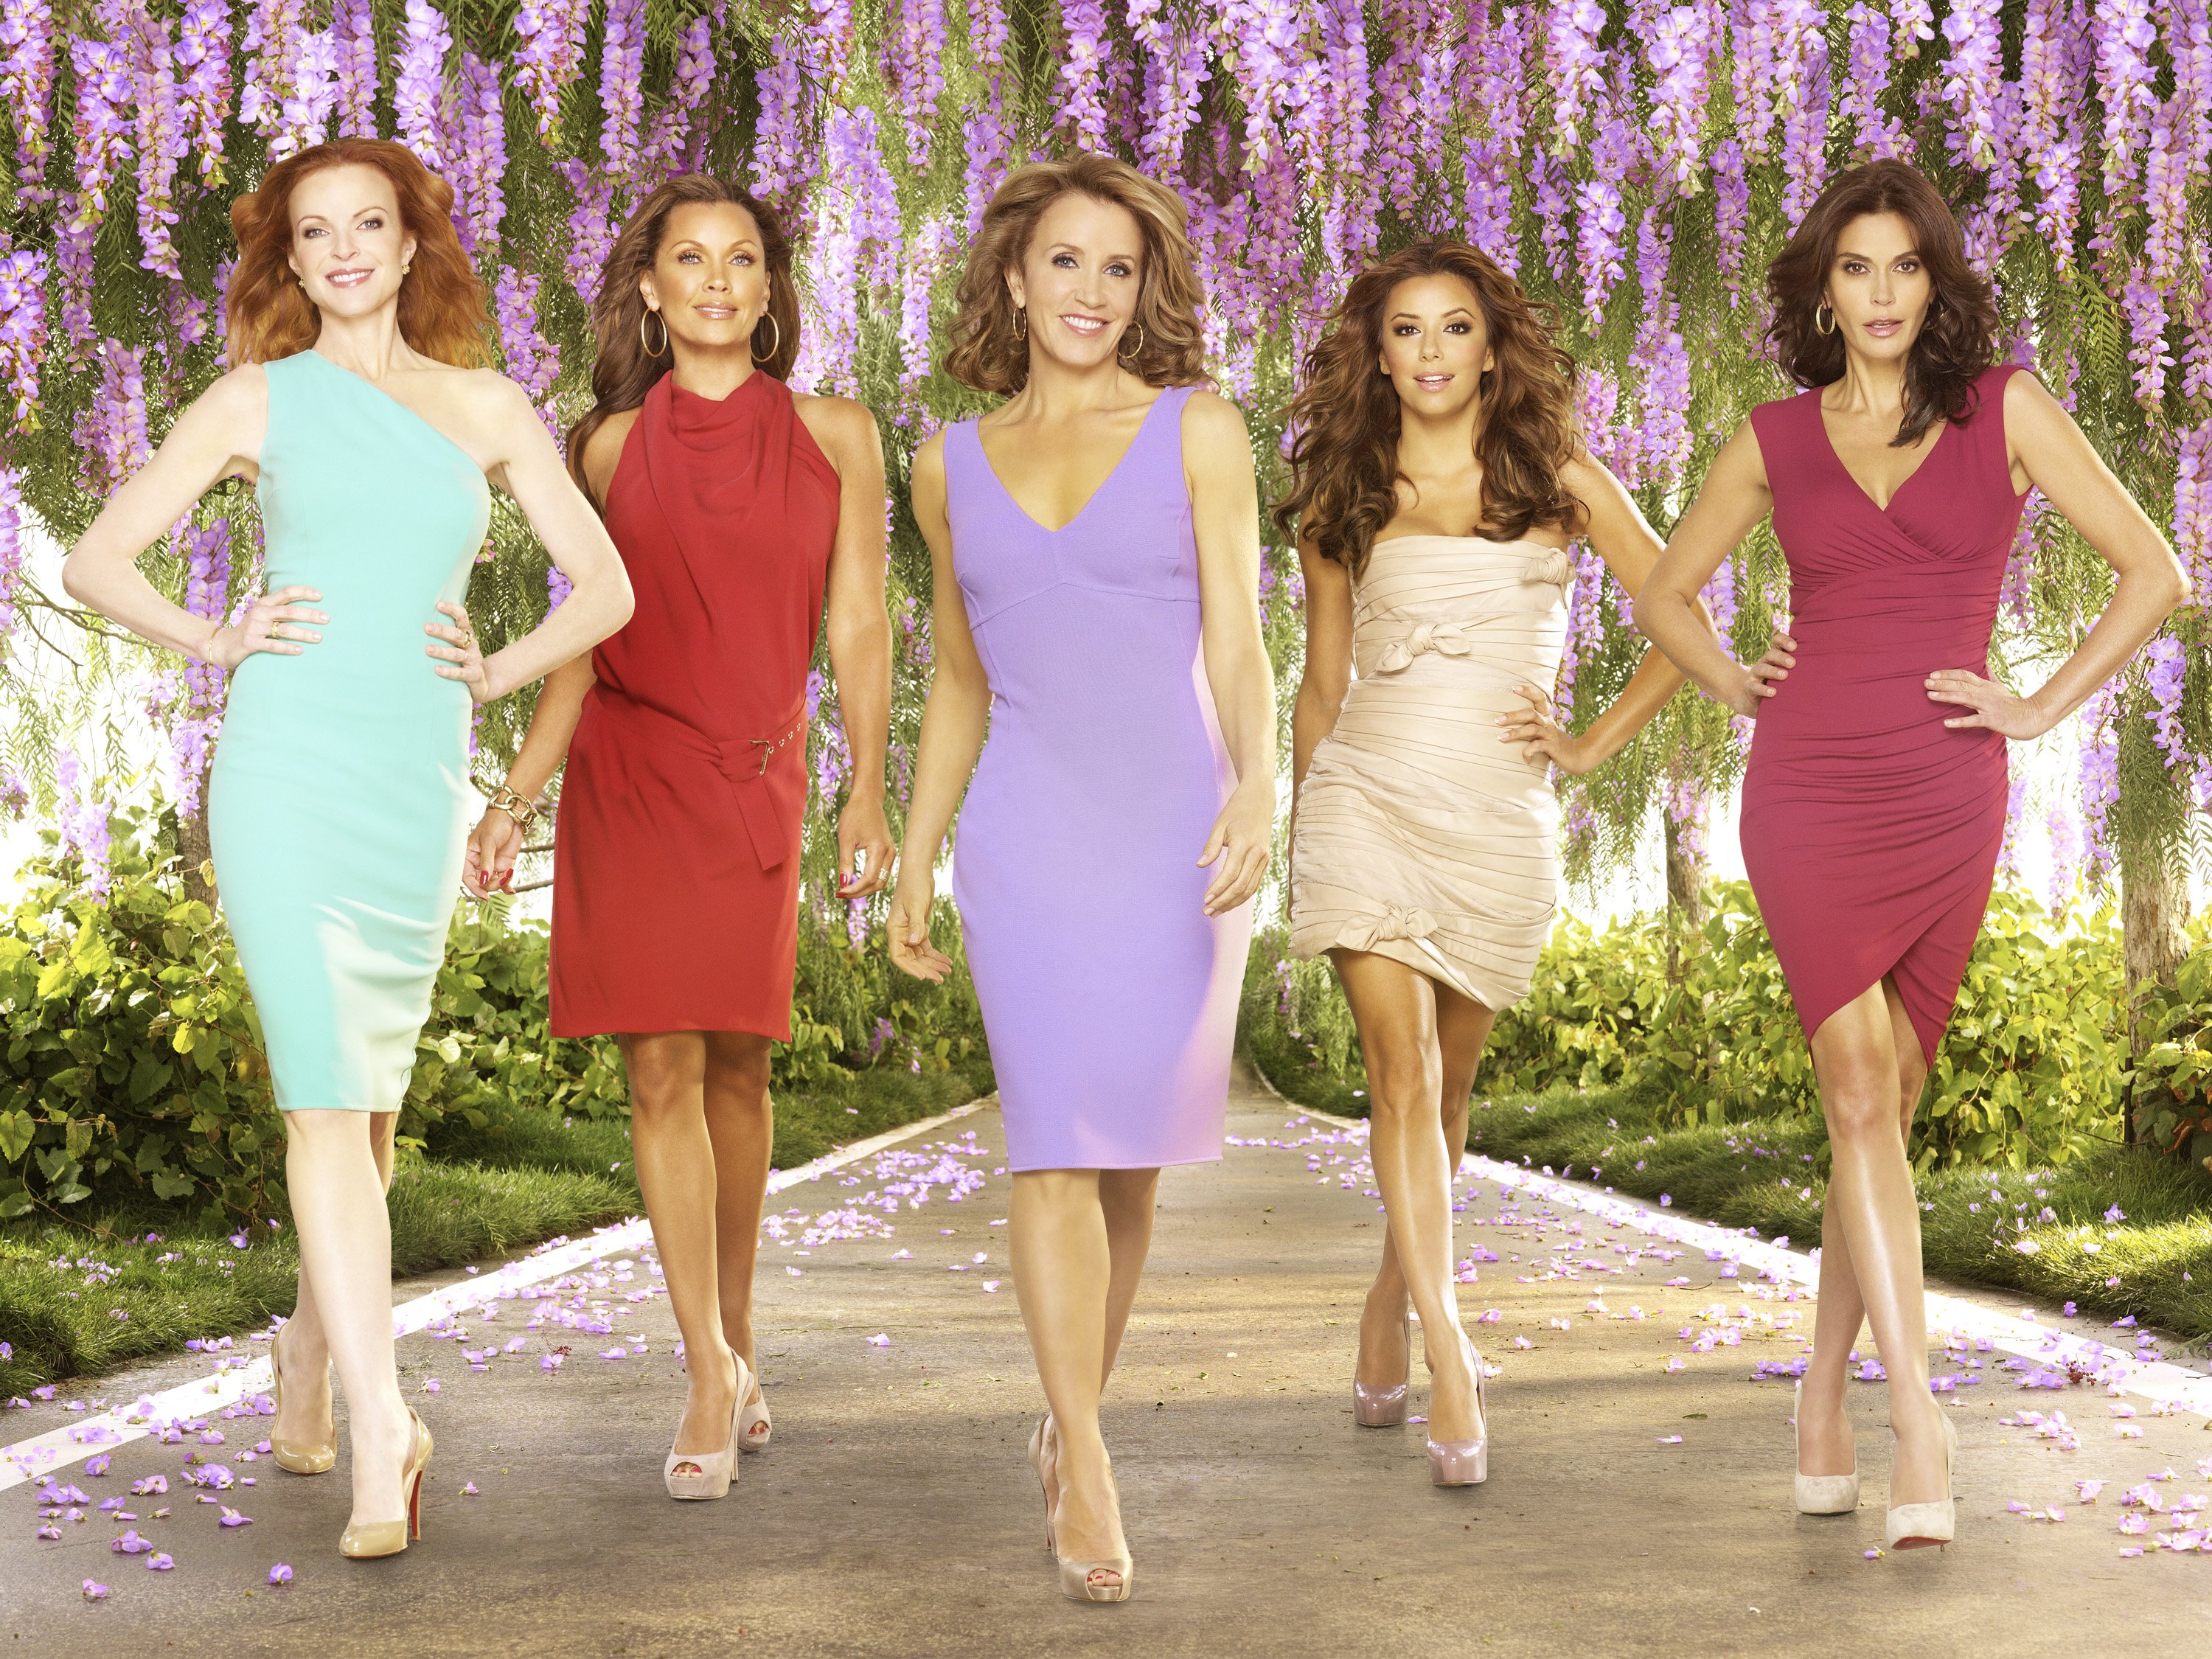 """Marcia Cross, Vanessa Williams, Felicity Huffman, Eva Longoria Parker, Teri Hatcher pose for a promotional photo for """"Desperate Housewives"""" in LA, 2010 